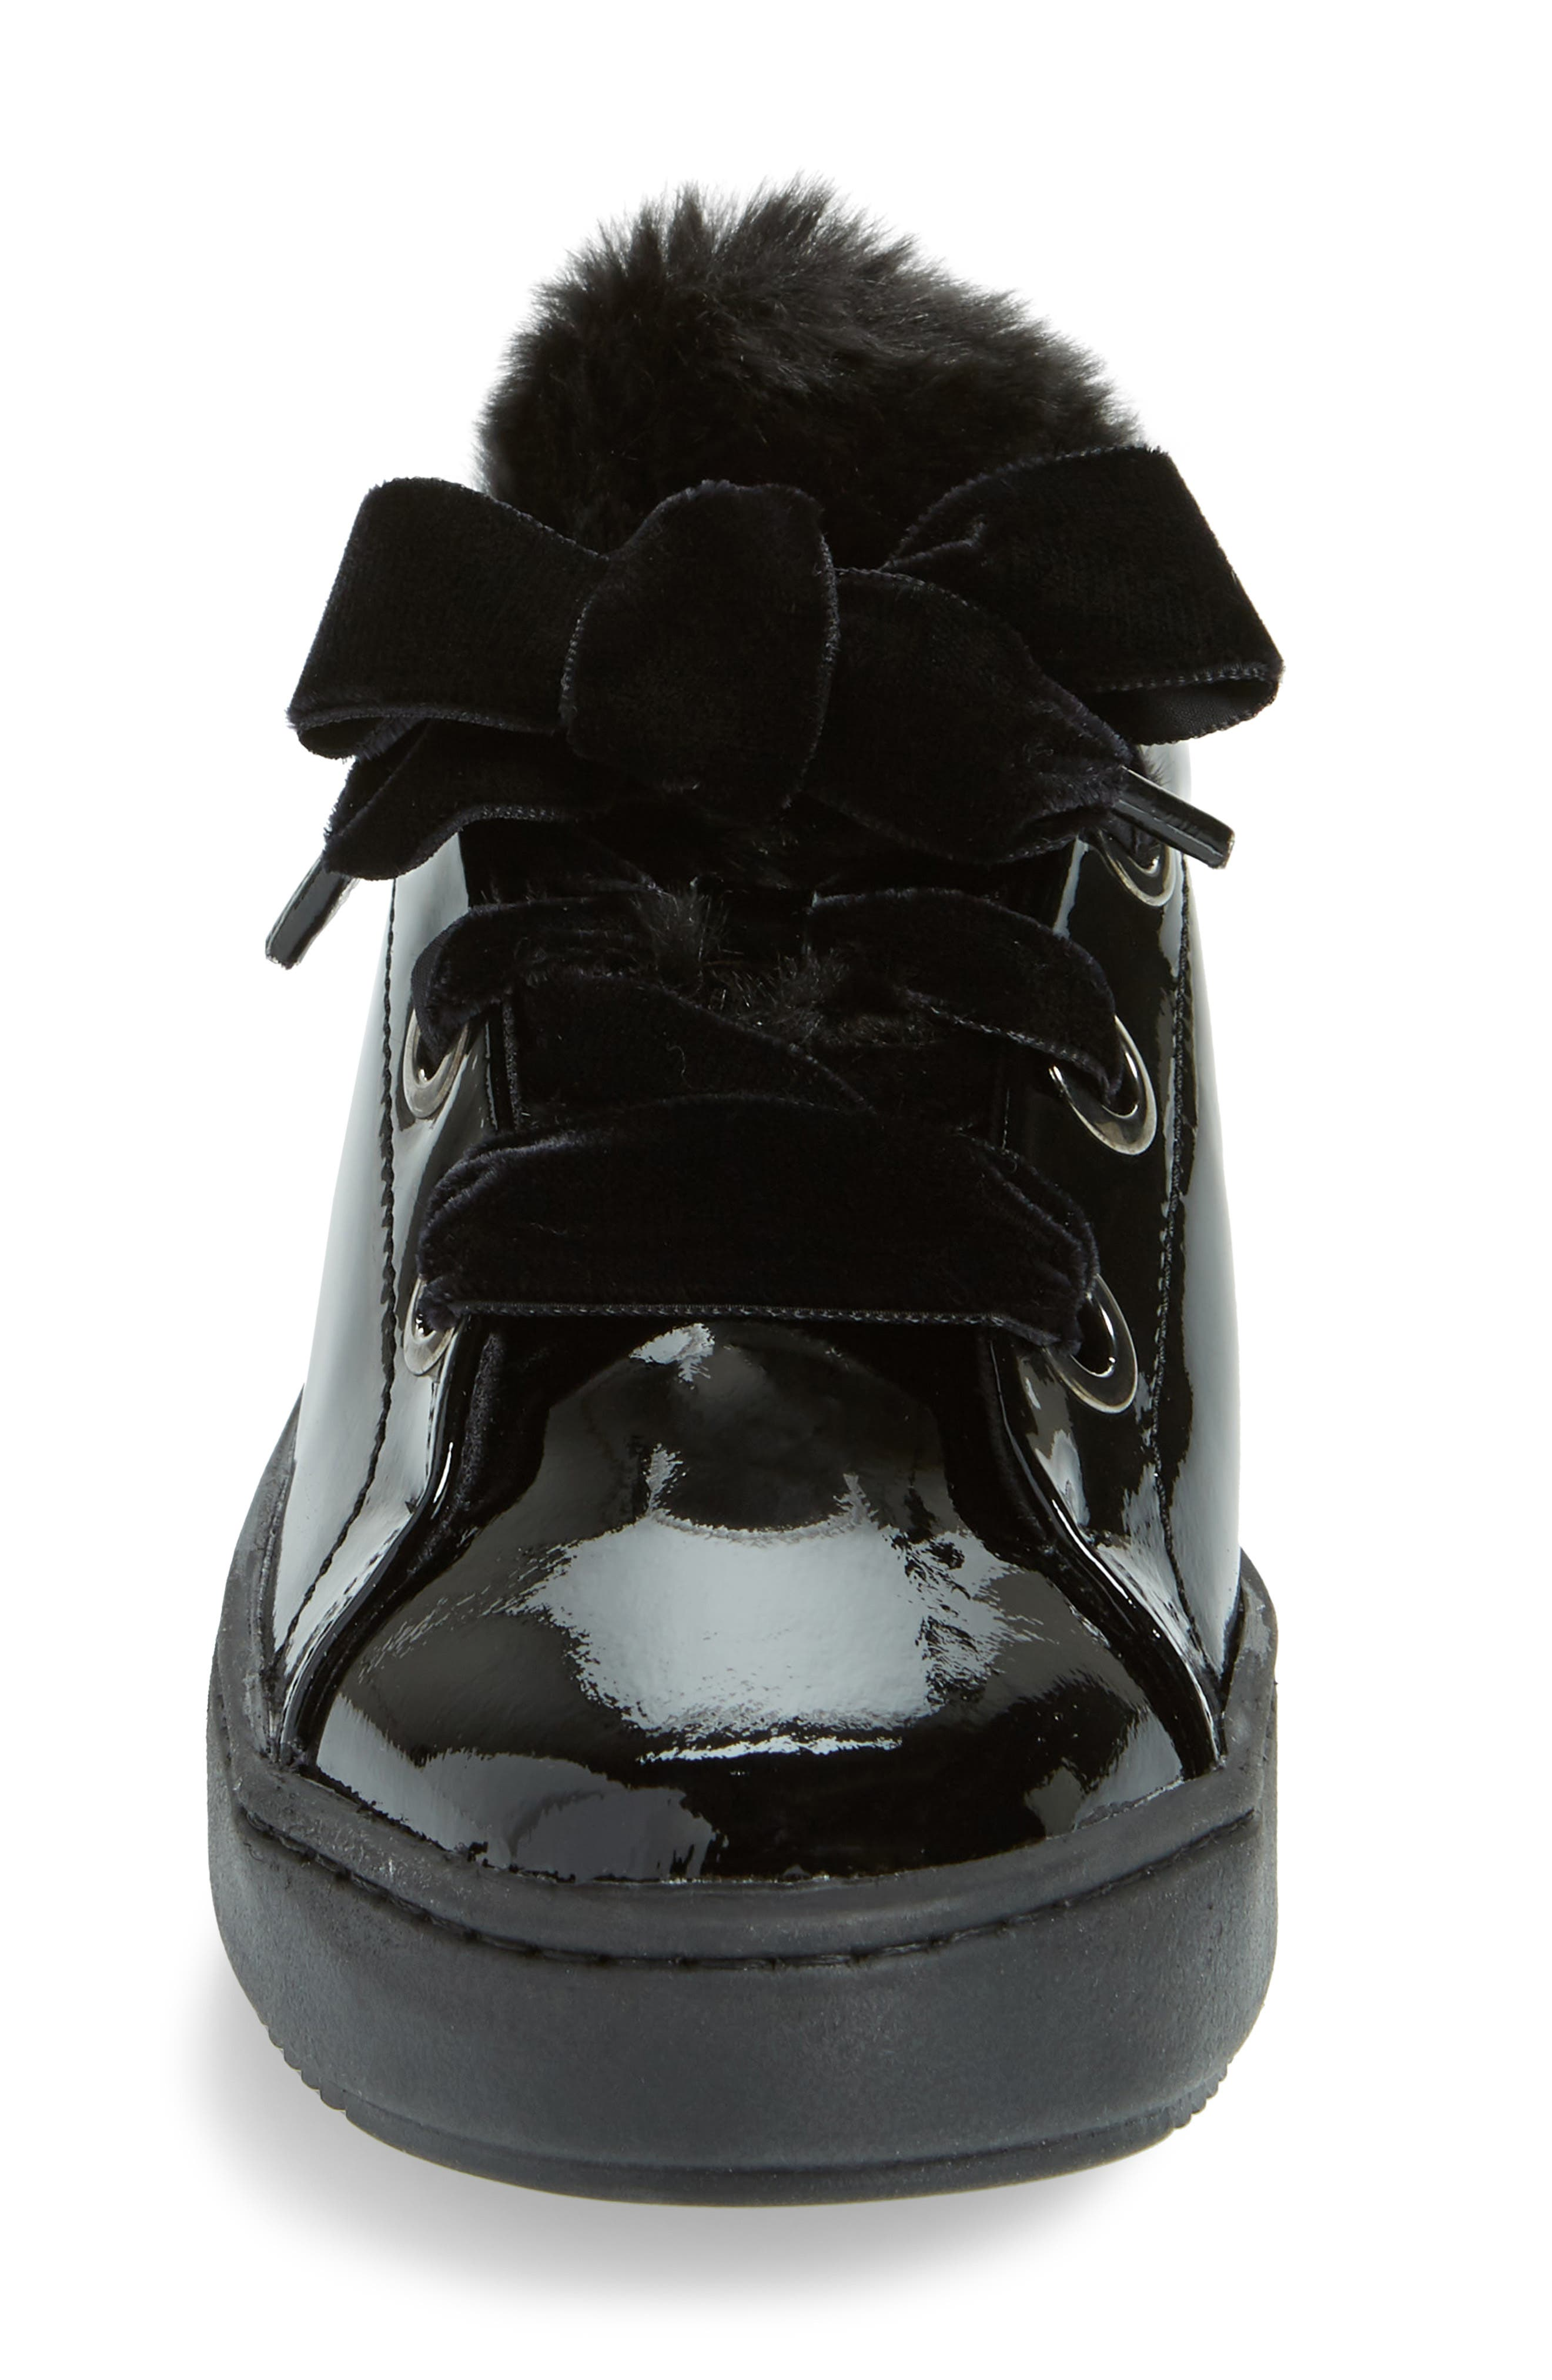 Groove Faux-Shearling Trim Sneaker,                             Alternate thumbnail 4, color,                             BLACK PATENT LEATHER